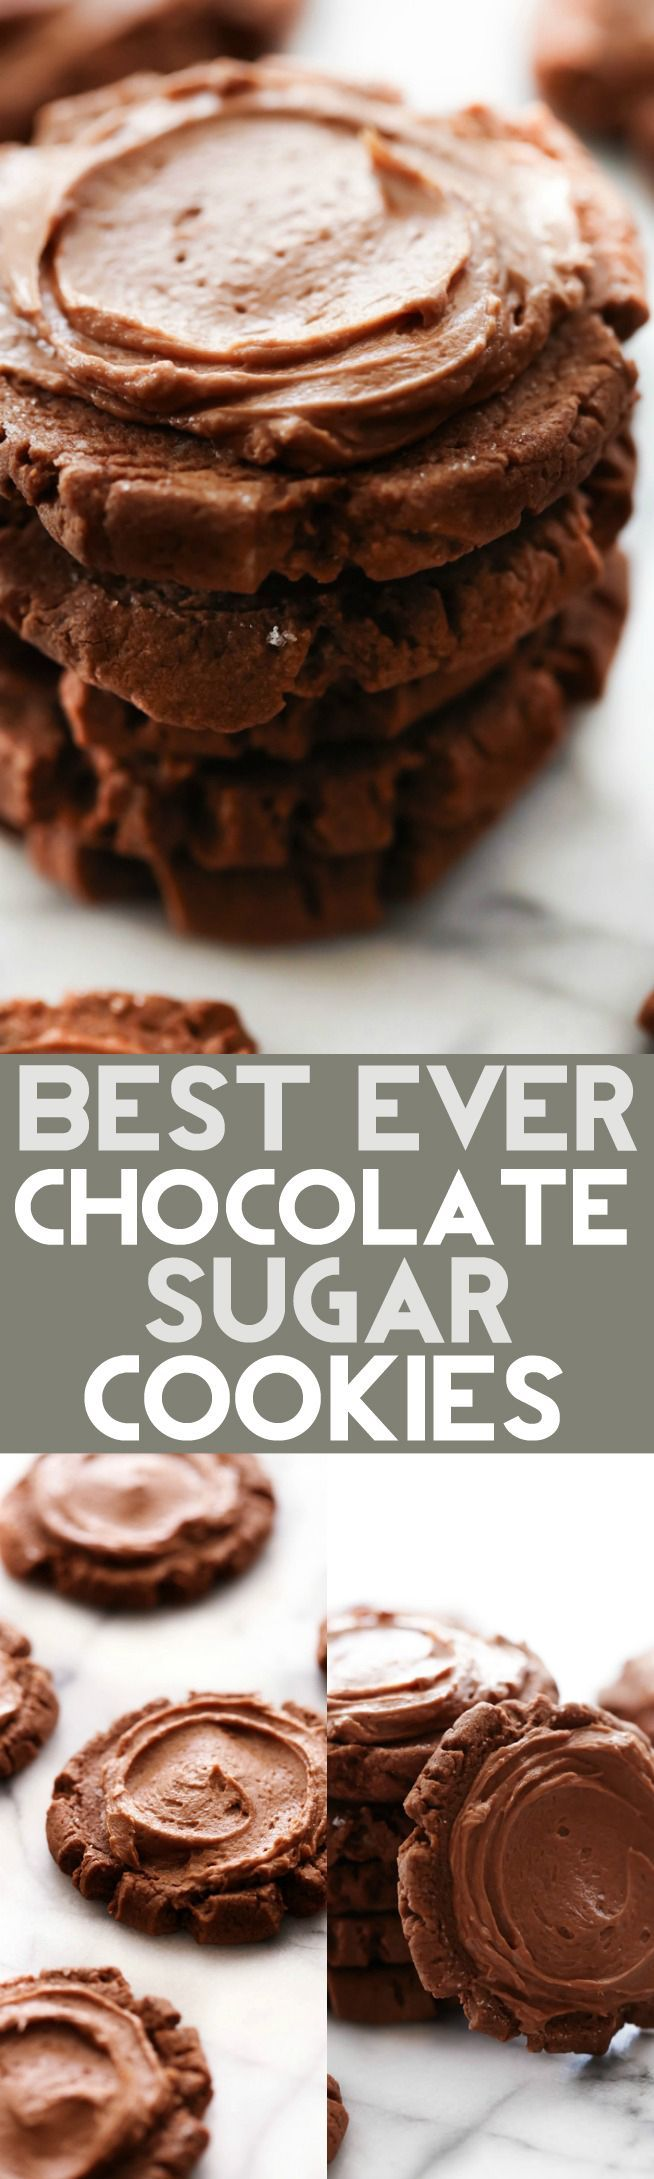 """These Chocolate Sugar Cookies are truly THE BEST EVER! They are inspired by my favorite """"Dirtball Cookie"""" at a drink stop called Swig. They…"""